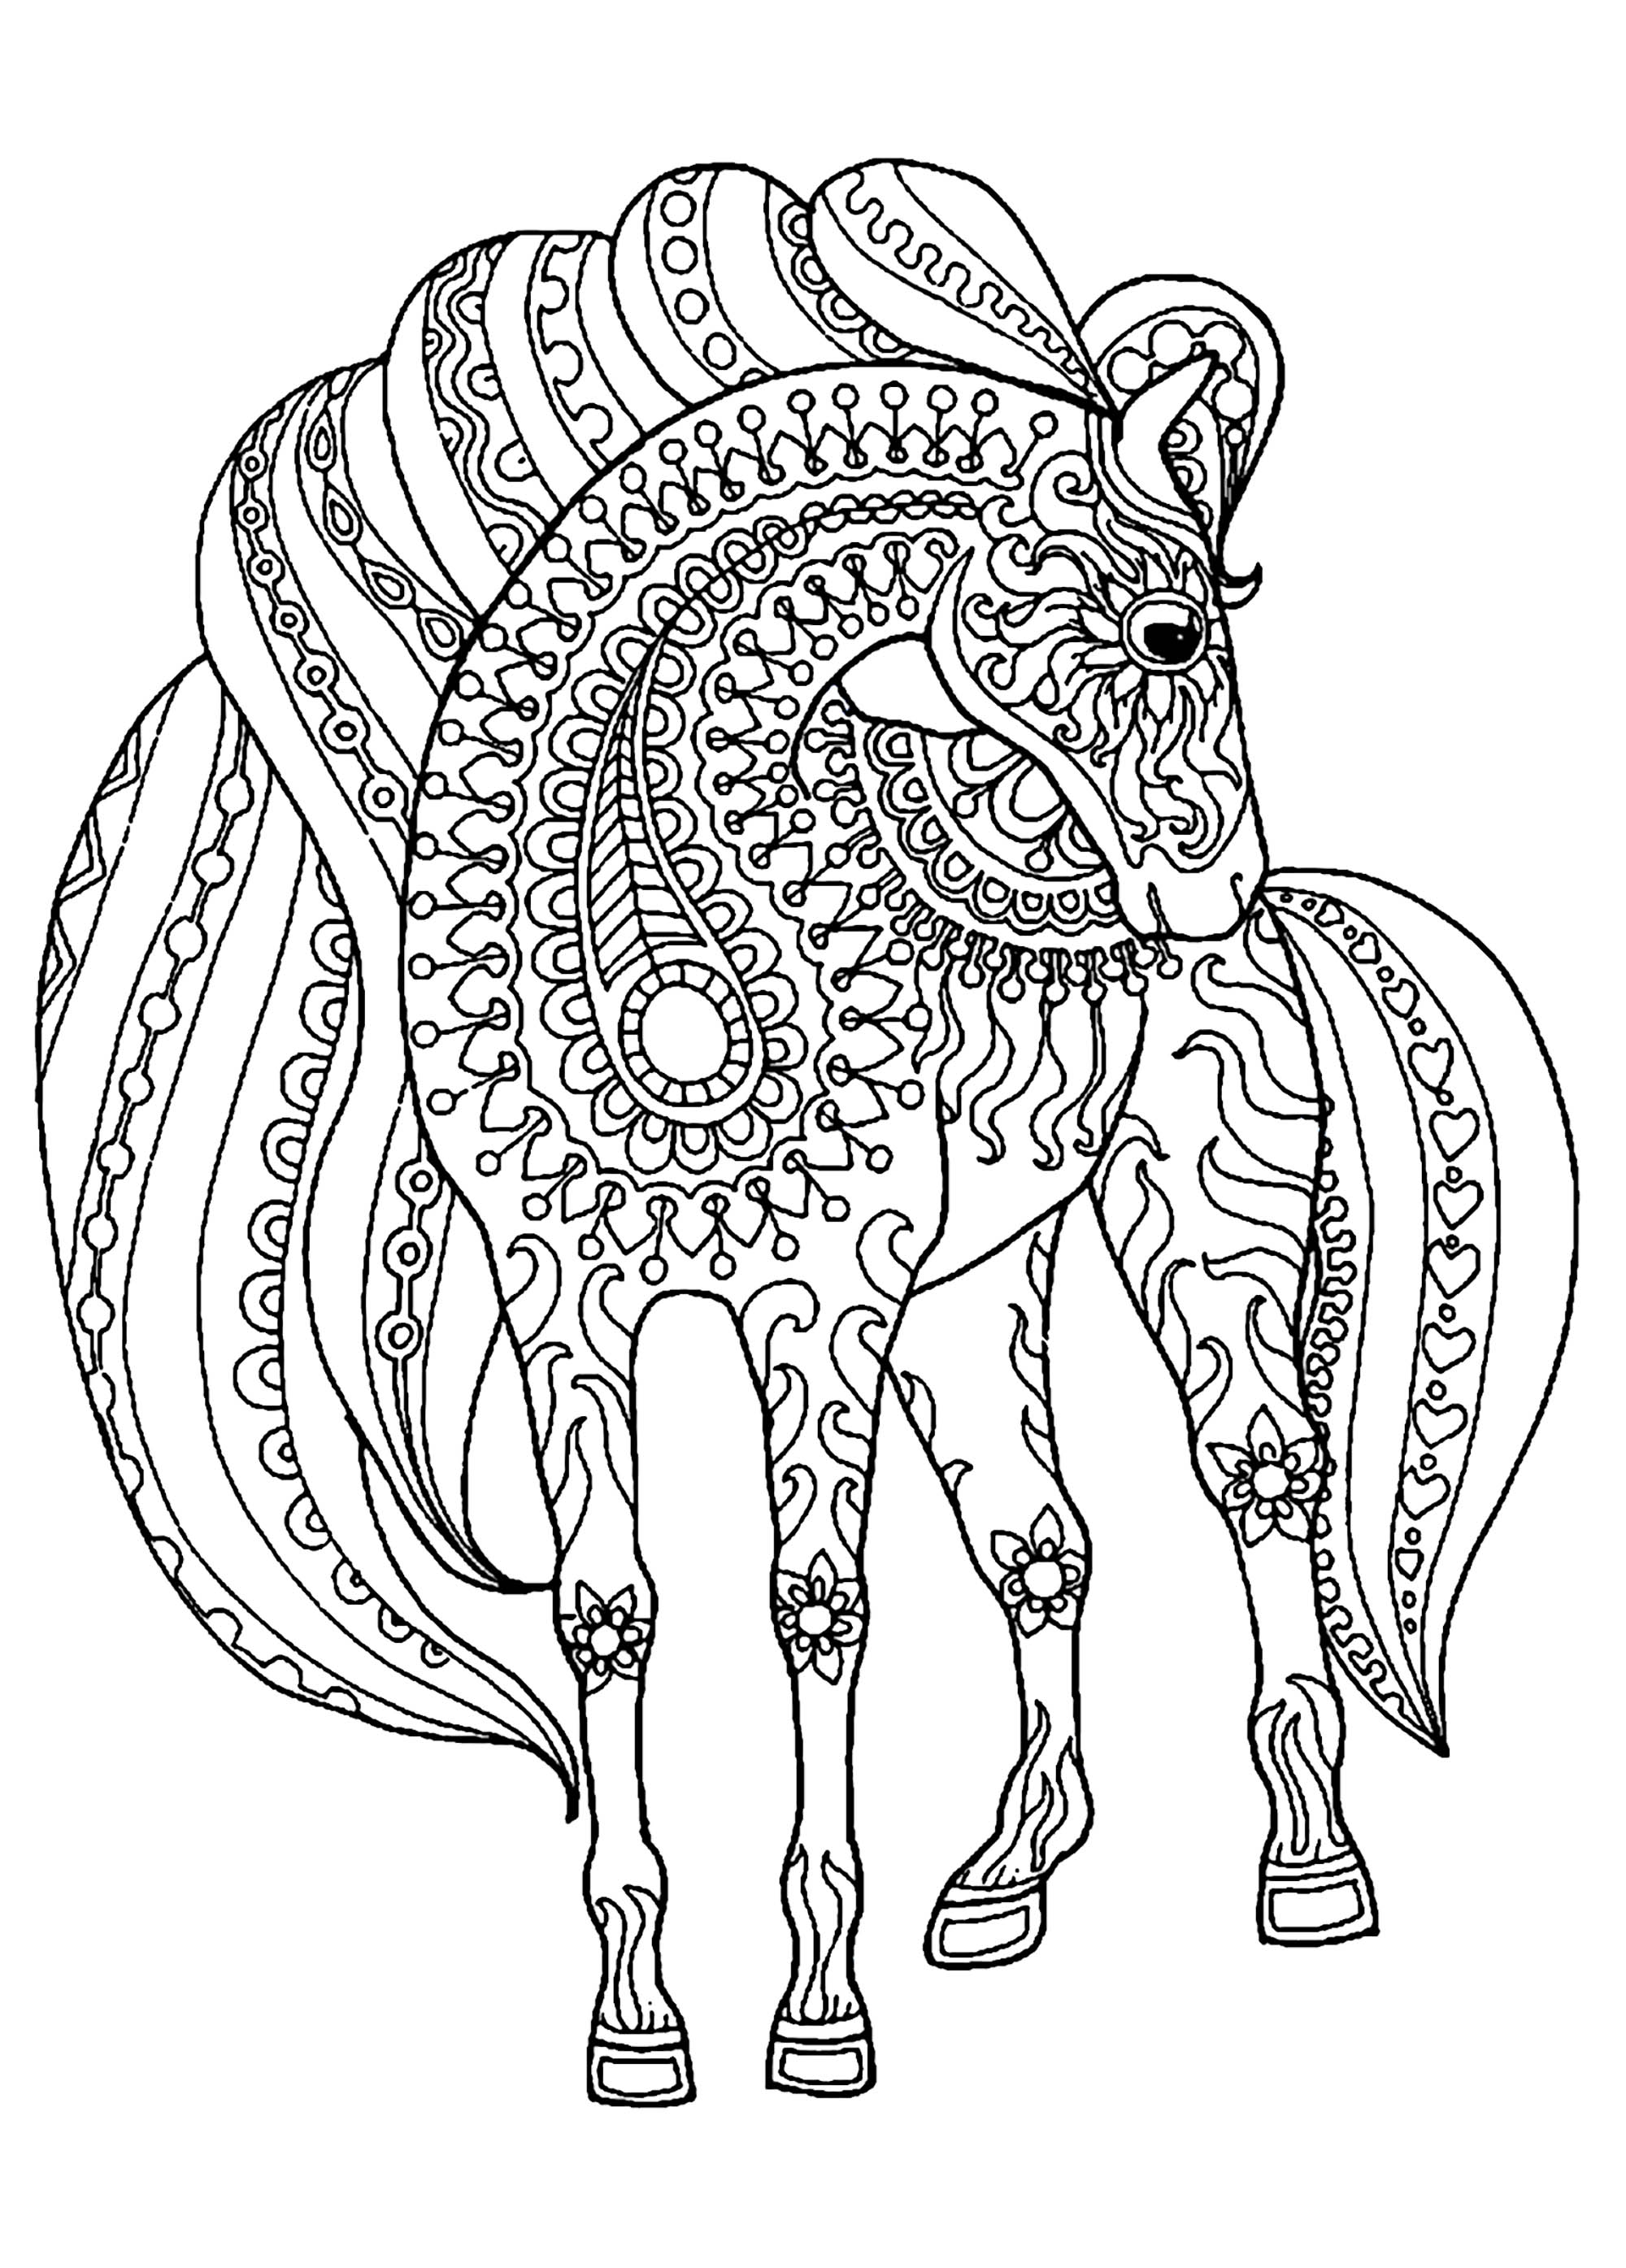 coloring pages of horse free horse coloring pages horse coloring of pages